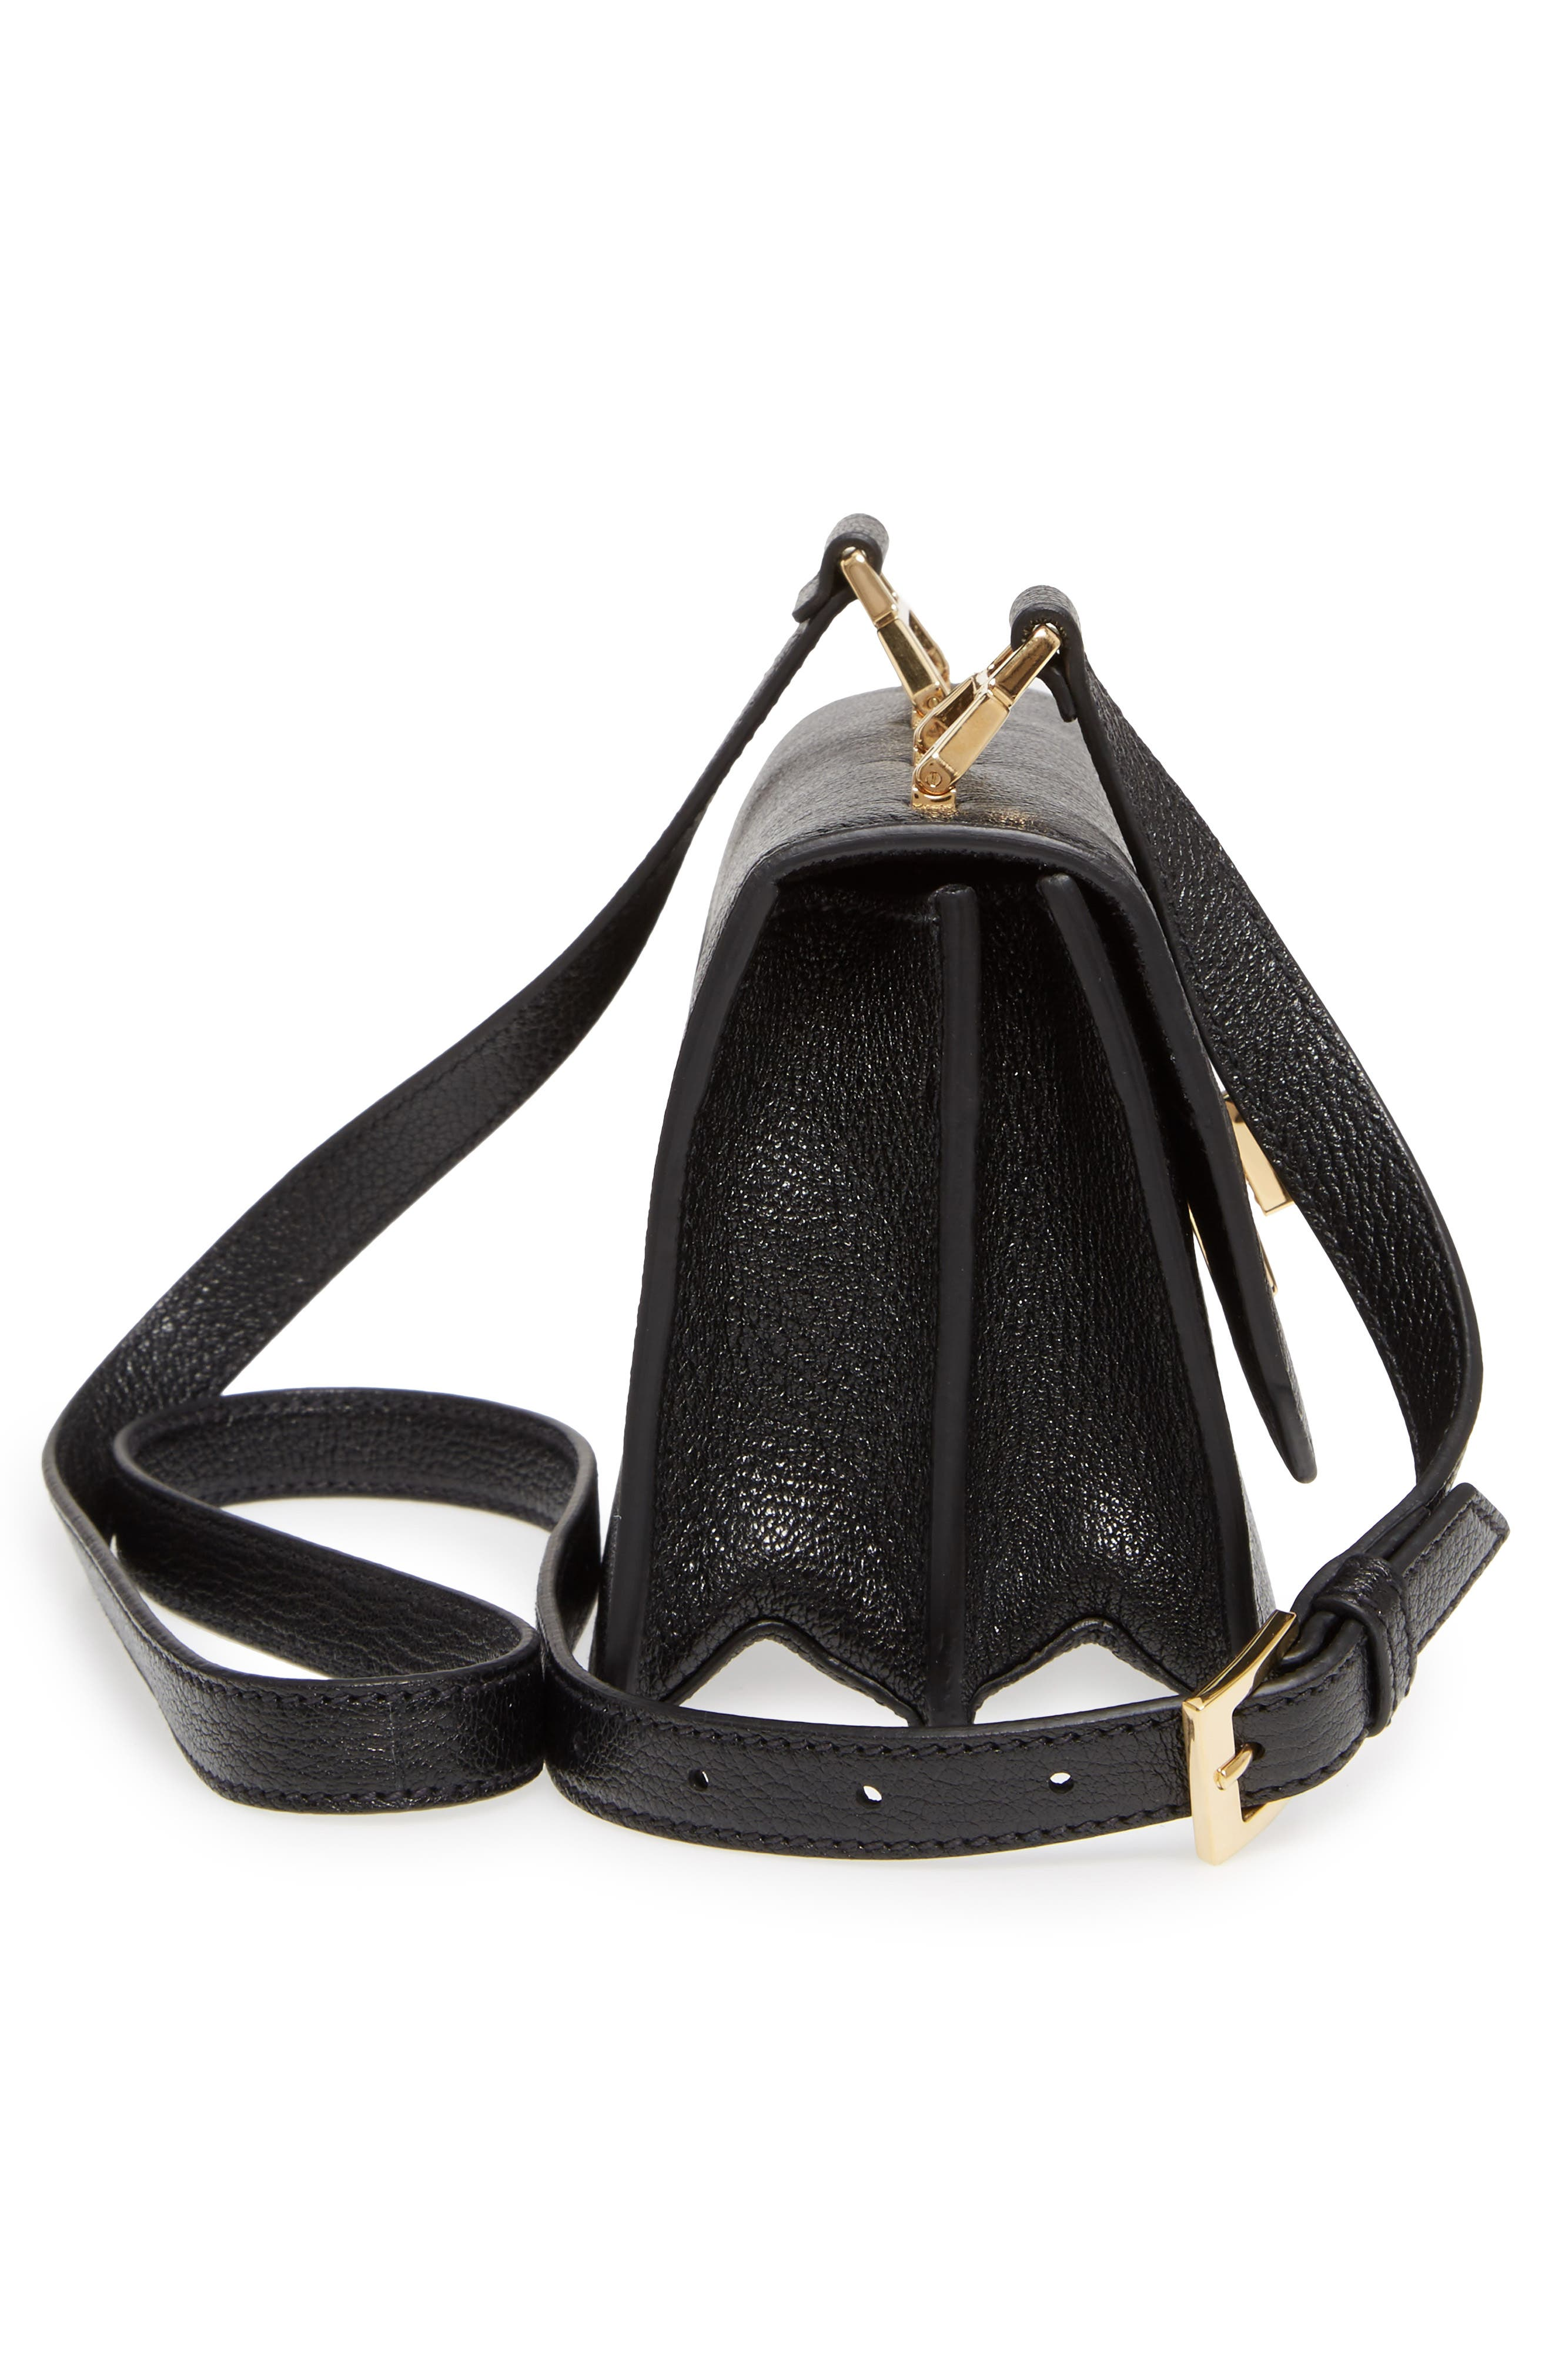 Madras Leather Crossbody Bag,                             Alternate thumbnail 4, color,                             Nero